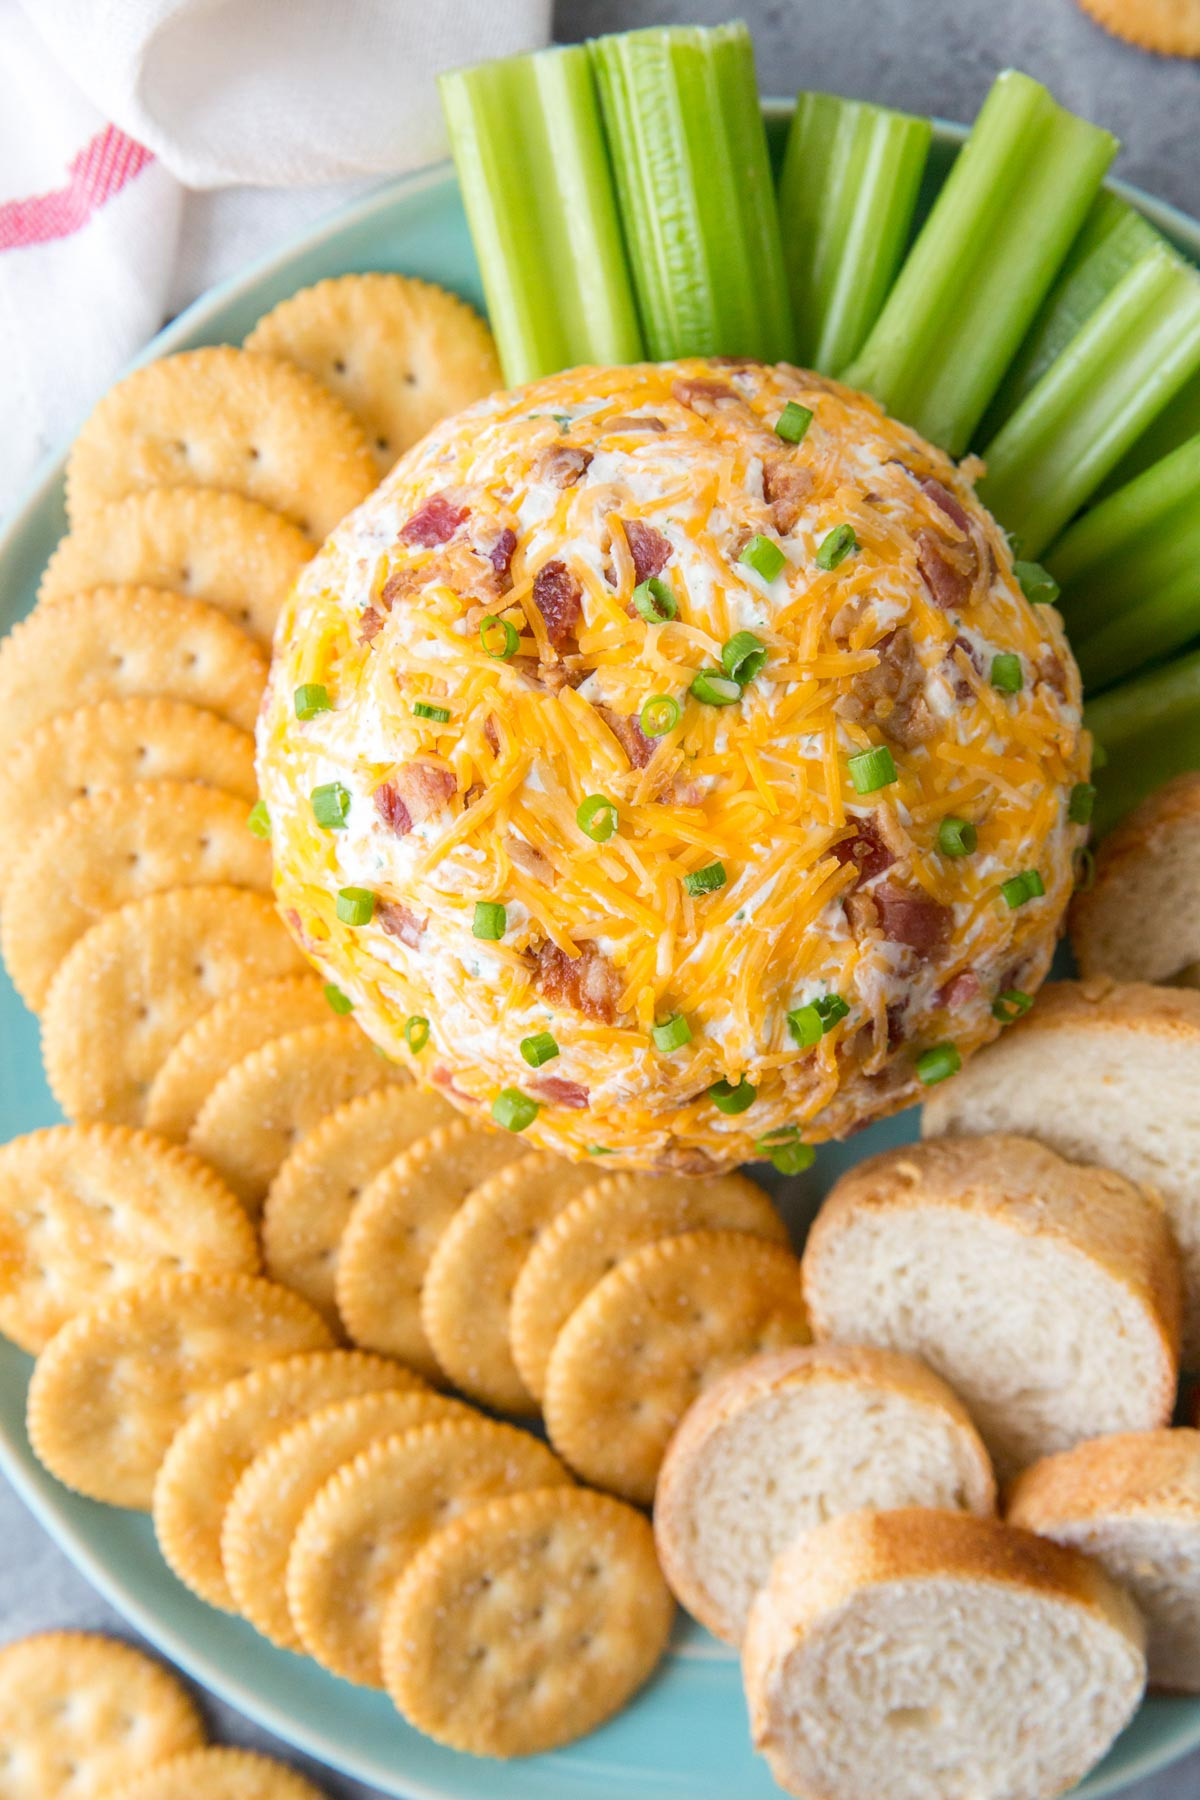 blue plate, crackers, slices of bread, celery, cheeseball with cheese, bacon and green onions